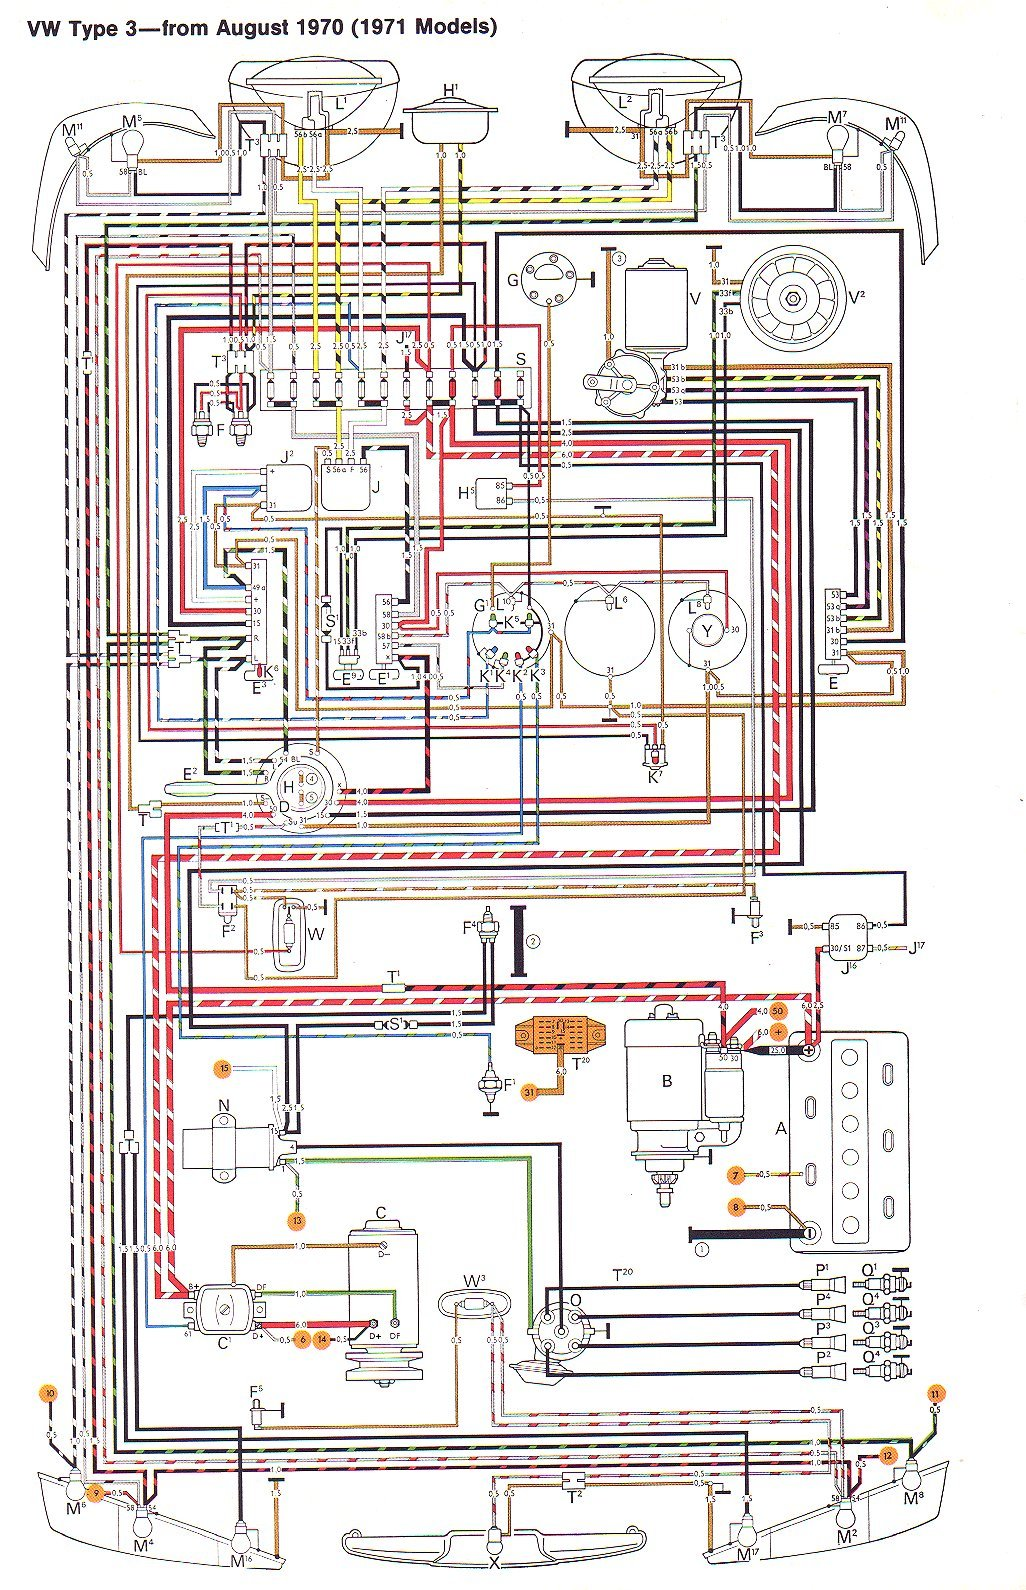 vw type 3 wiring diagrams VW Bug Wiring-Diagram Vw Type 3 Wiring Diagram #4